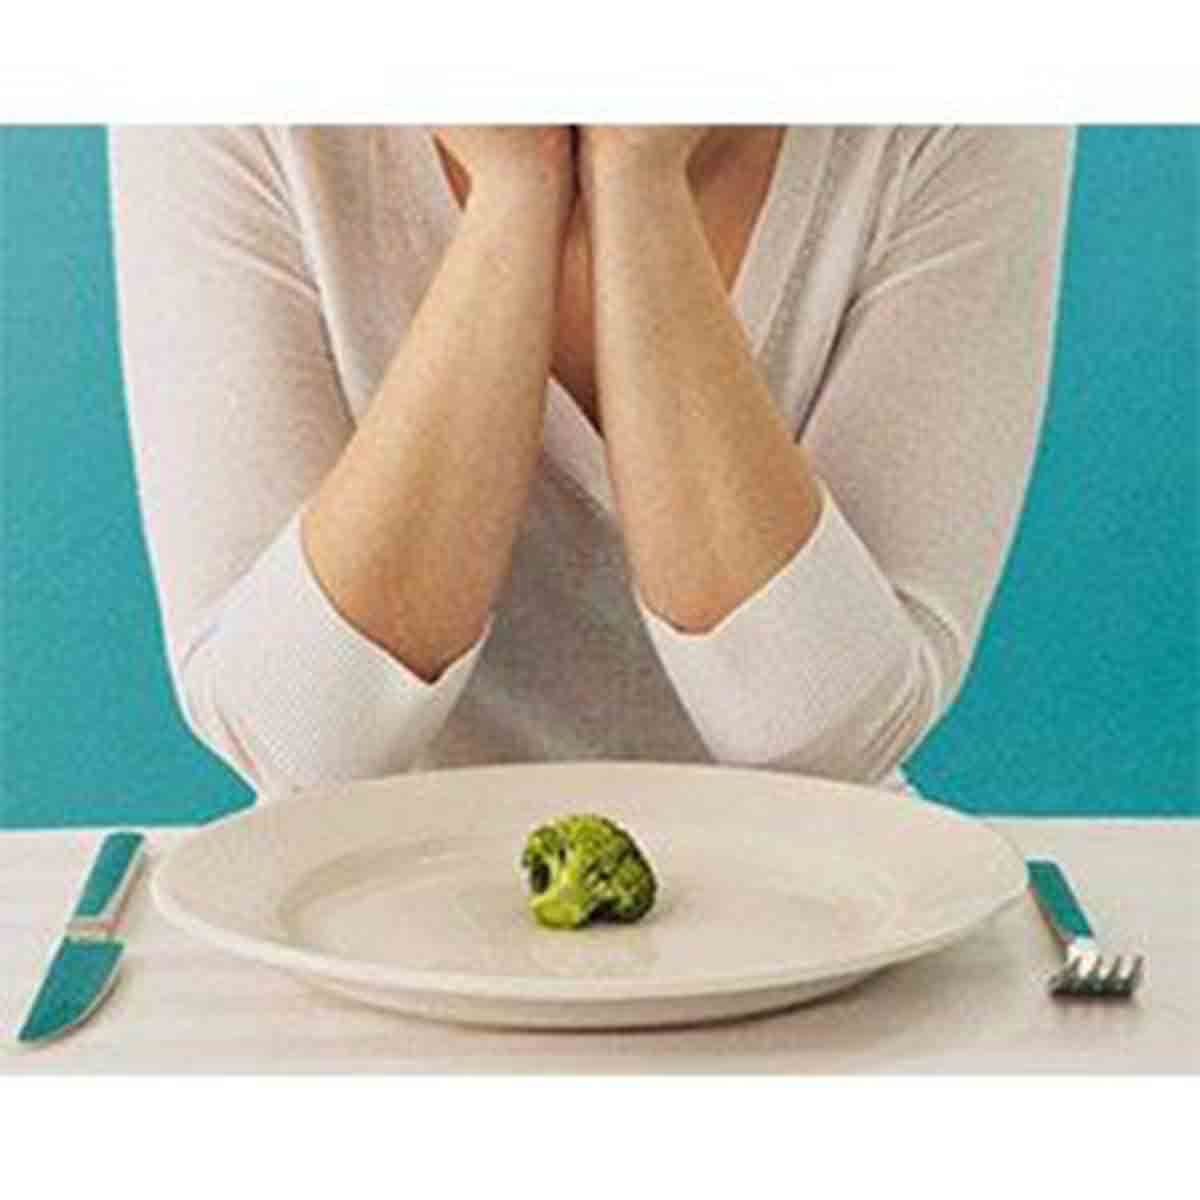 Forget Fad Diets, Should We Be Fasting Instead?